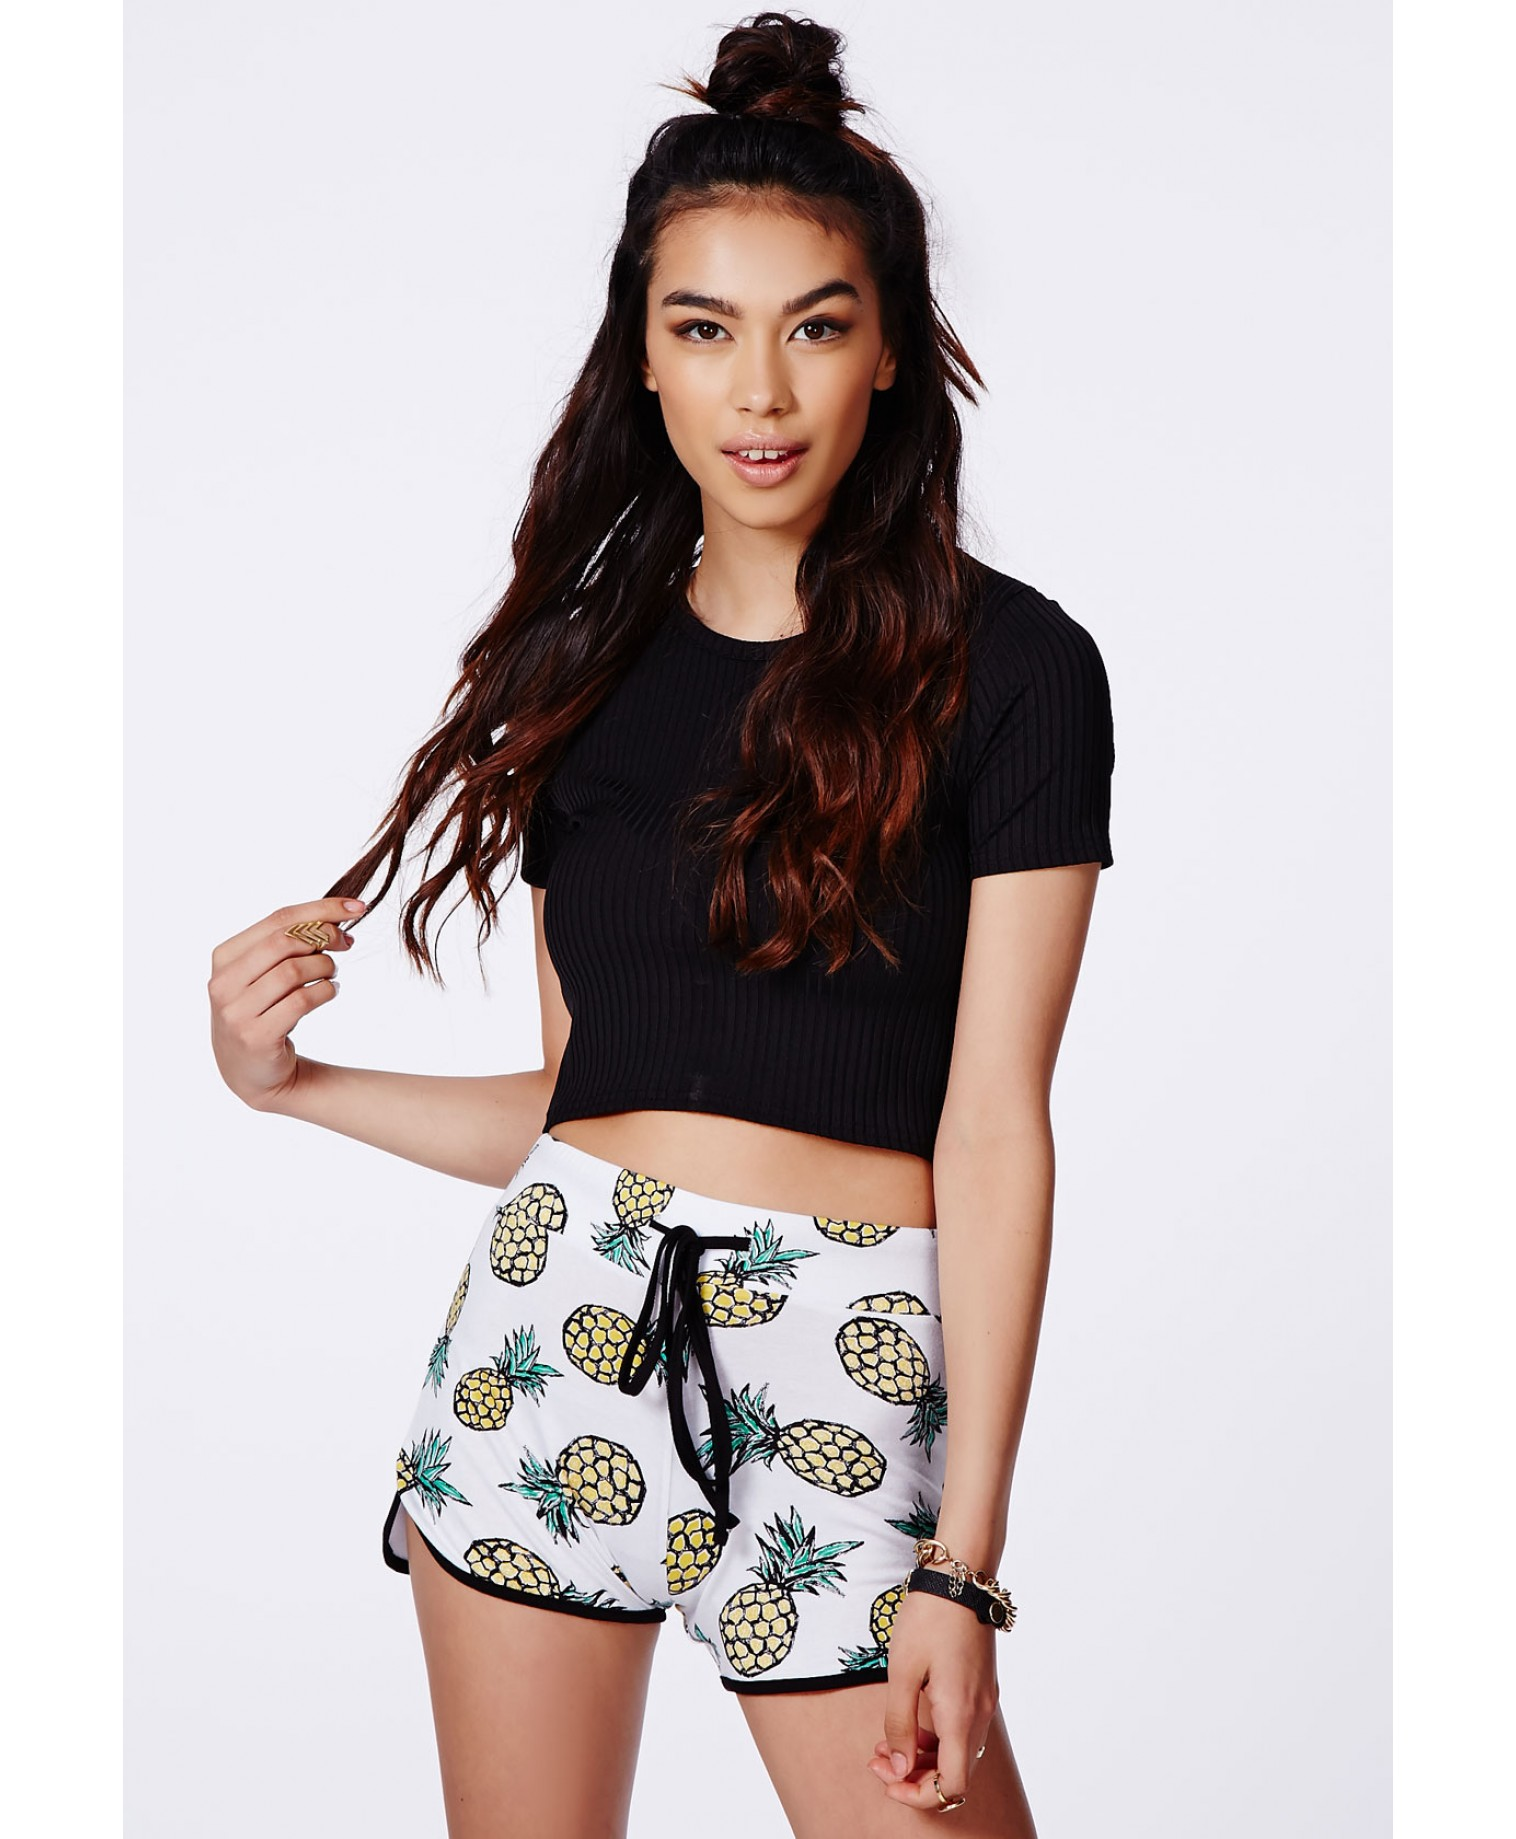 KETANA PINEAPPLE PRINT RUNNER SHORTS//MISSGUIDED.COM $14.38